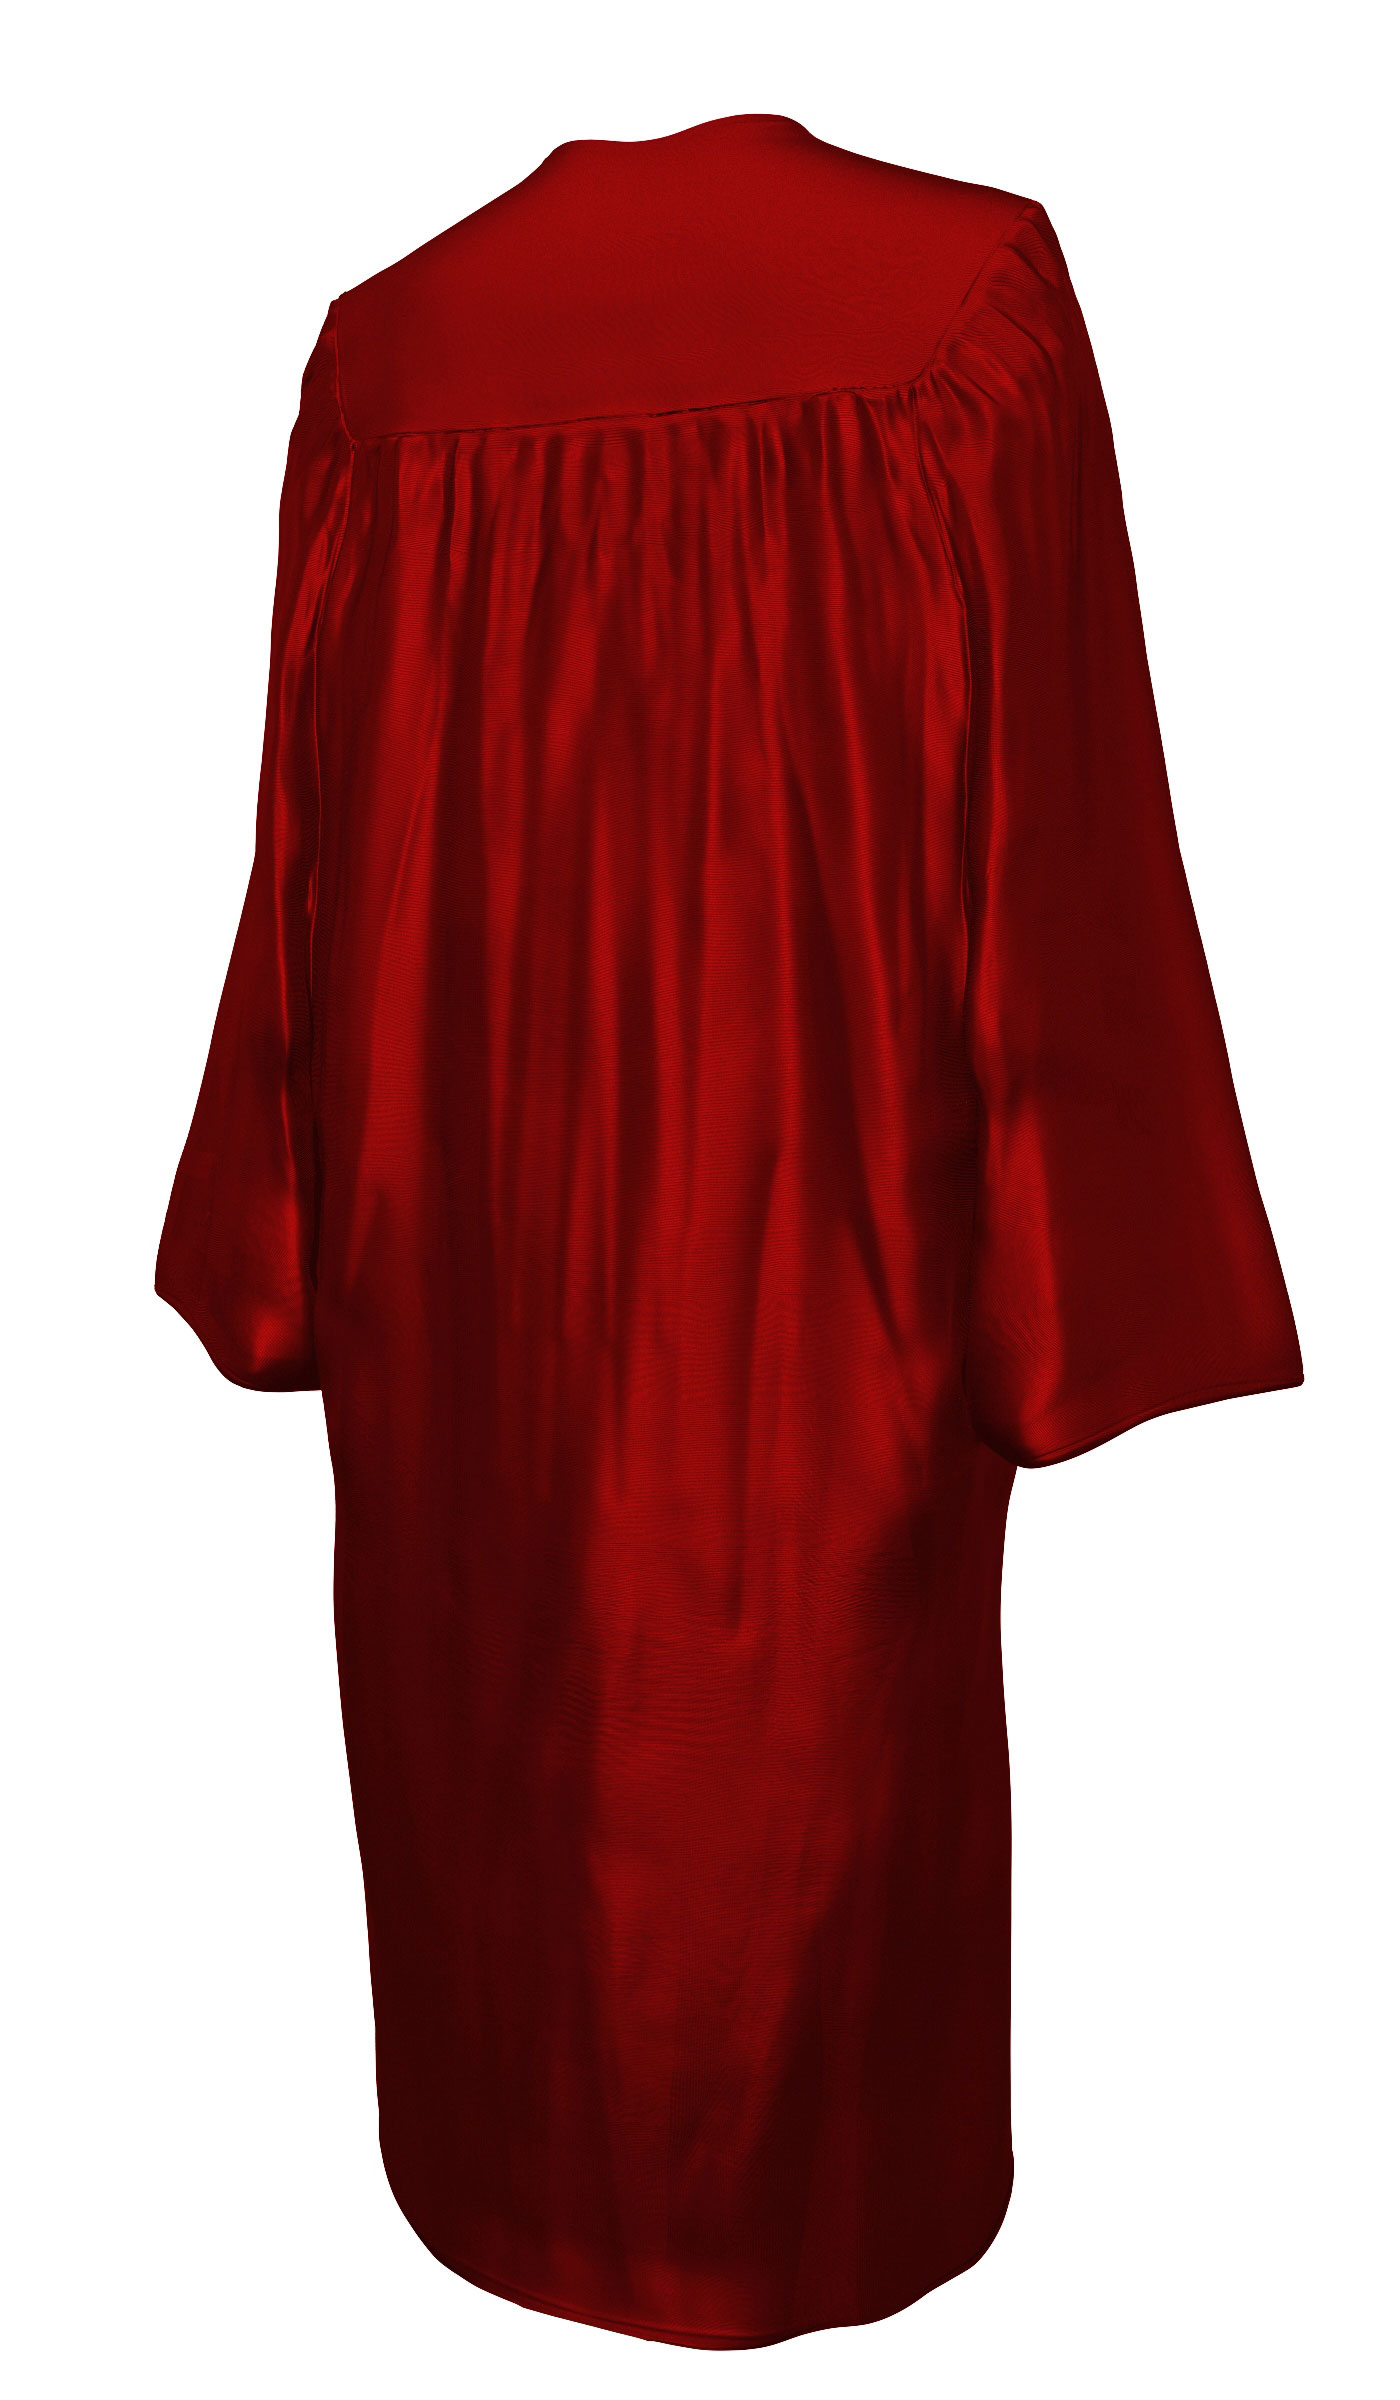 Shiny Maroon Red Cap And Gown Rs4251465611140